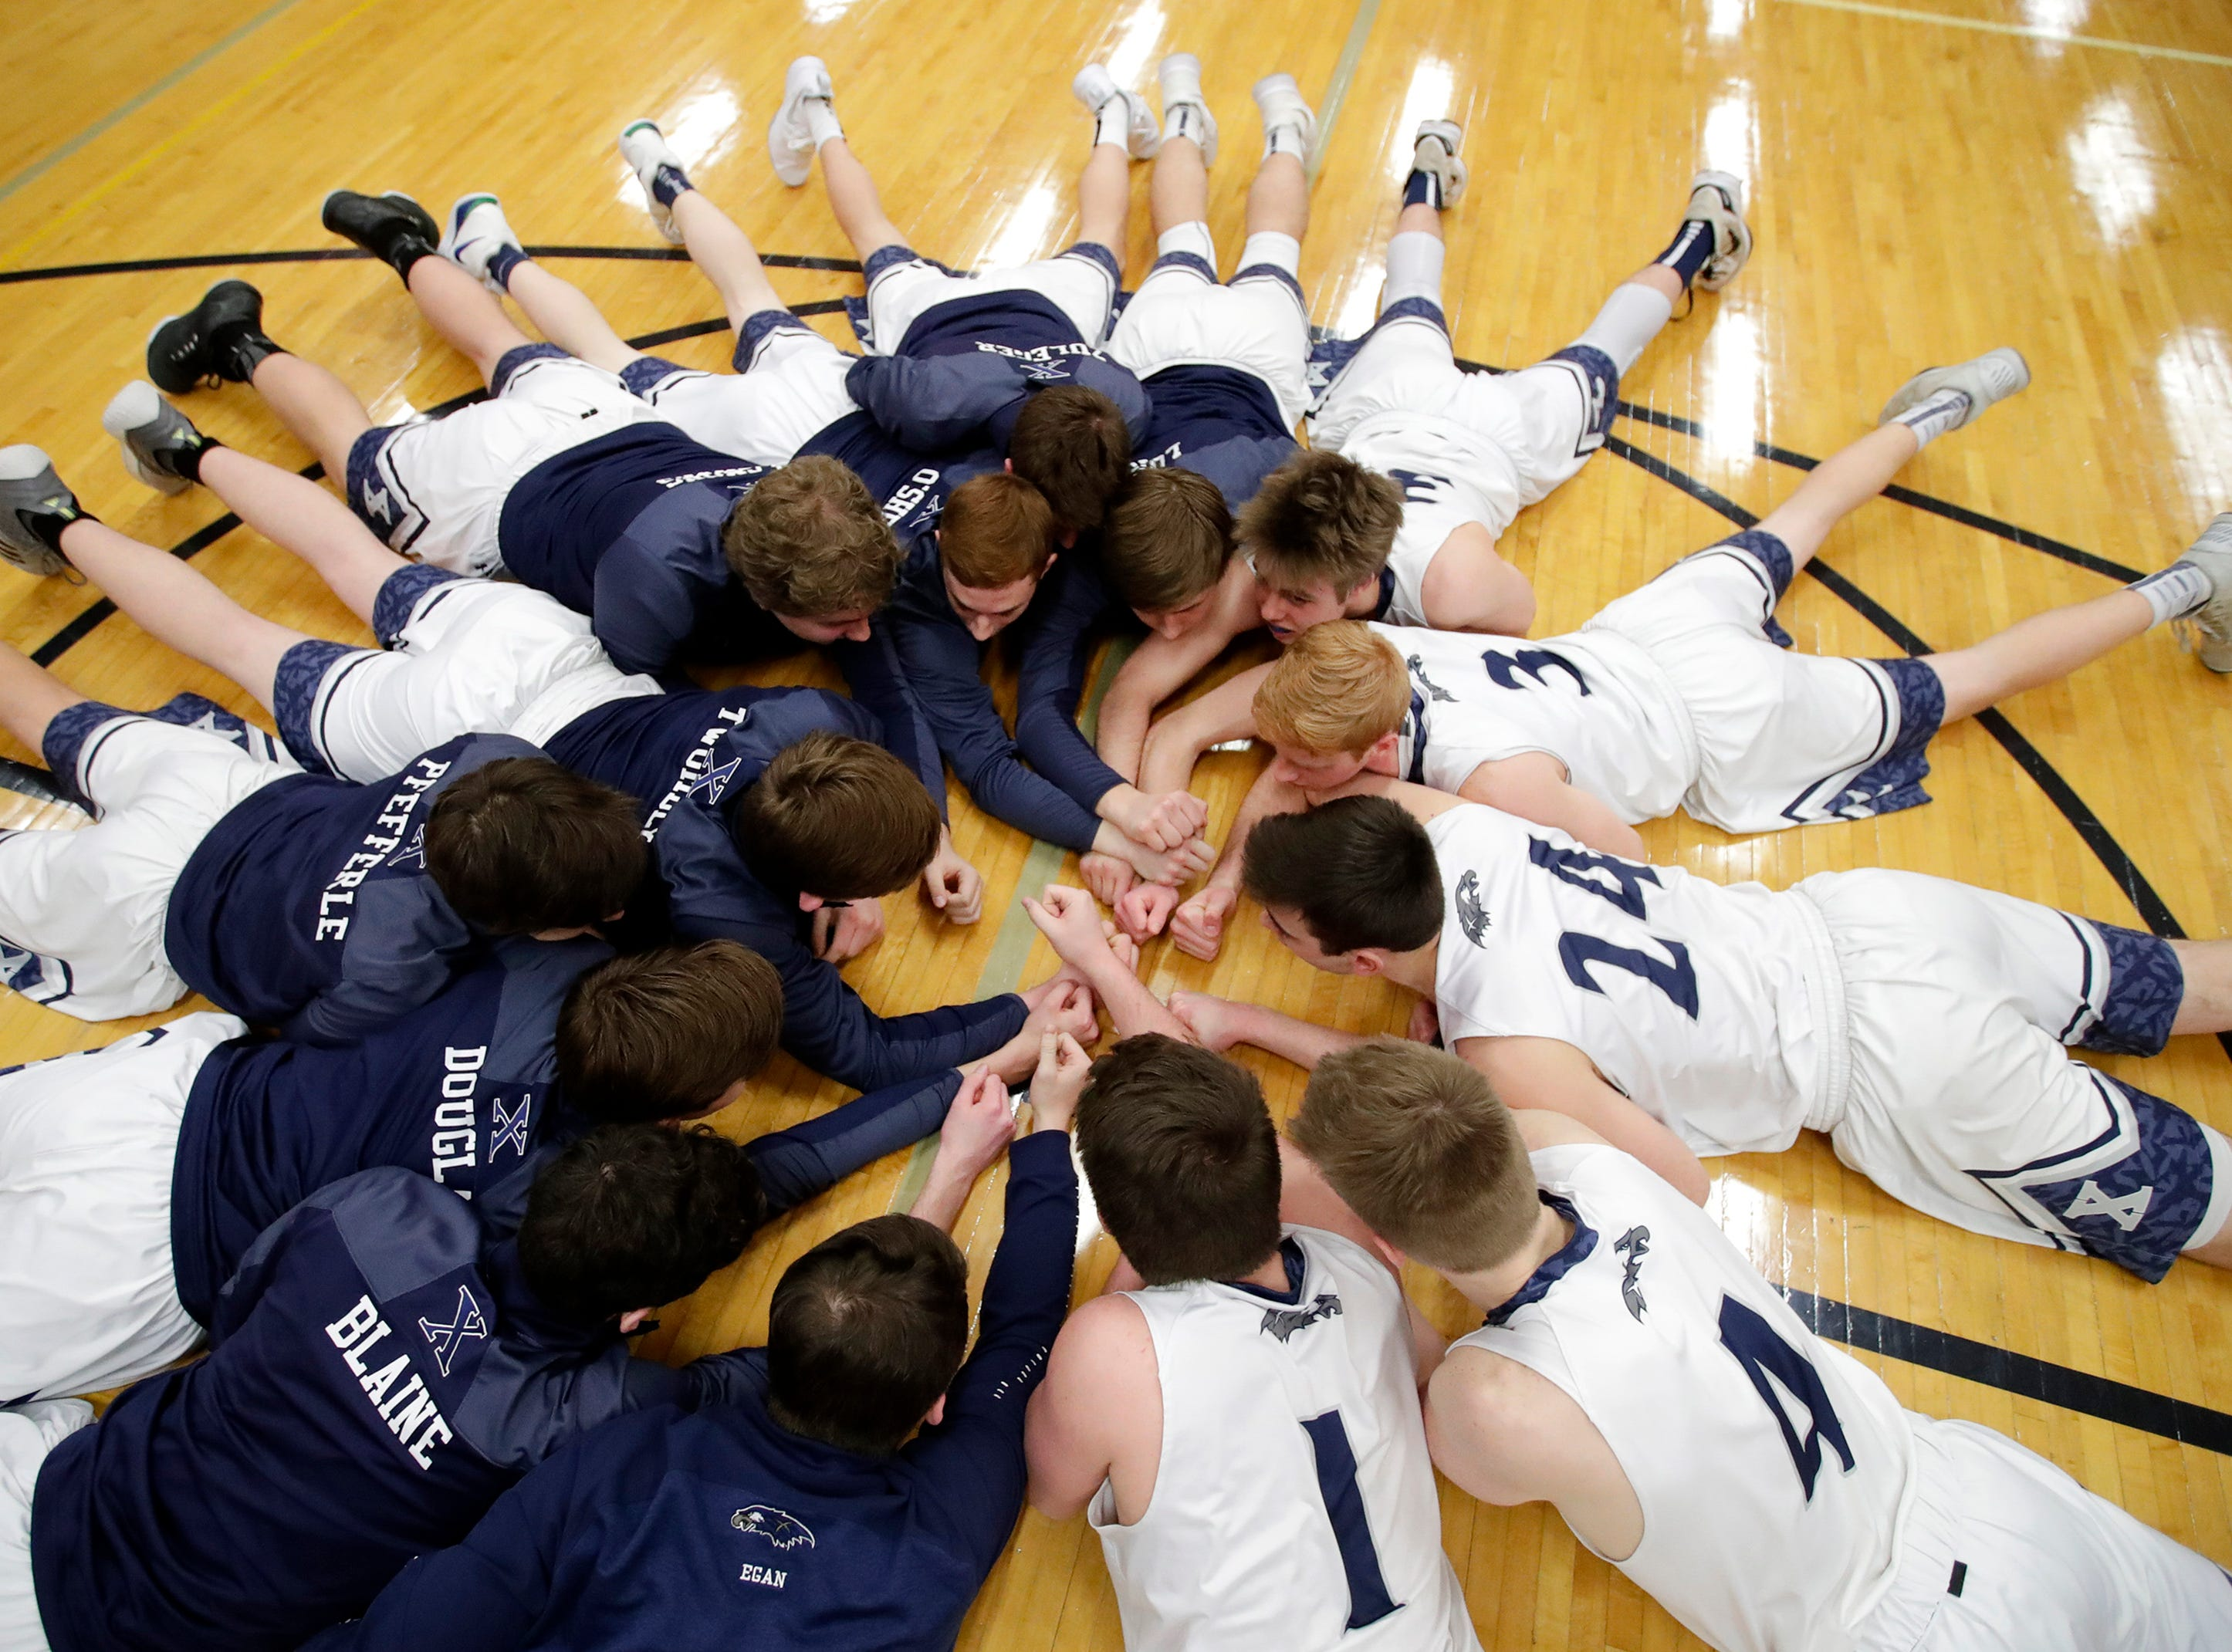 Xavier High School players get into a huddle on the ground after their lineup against Seymour High School was announced Friday, Feb. 8, 2019, in Appleton, Wis.Danny Damiani/USA TODAY NETWORK-Wisconsin